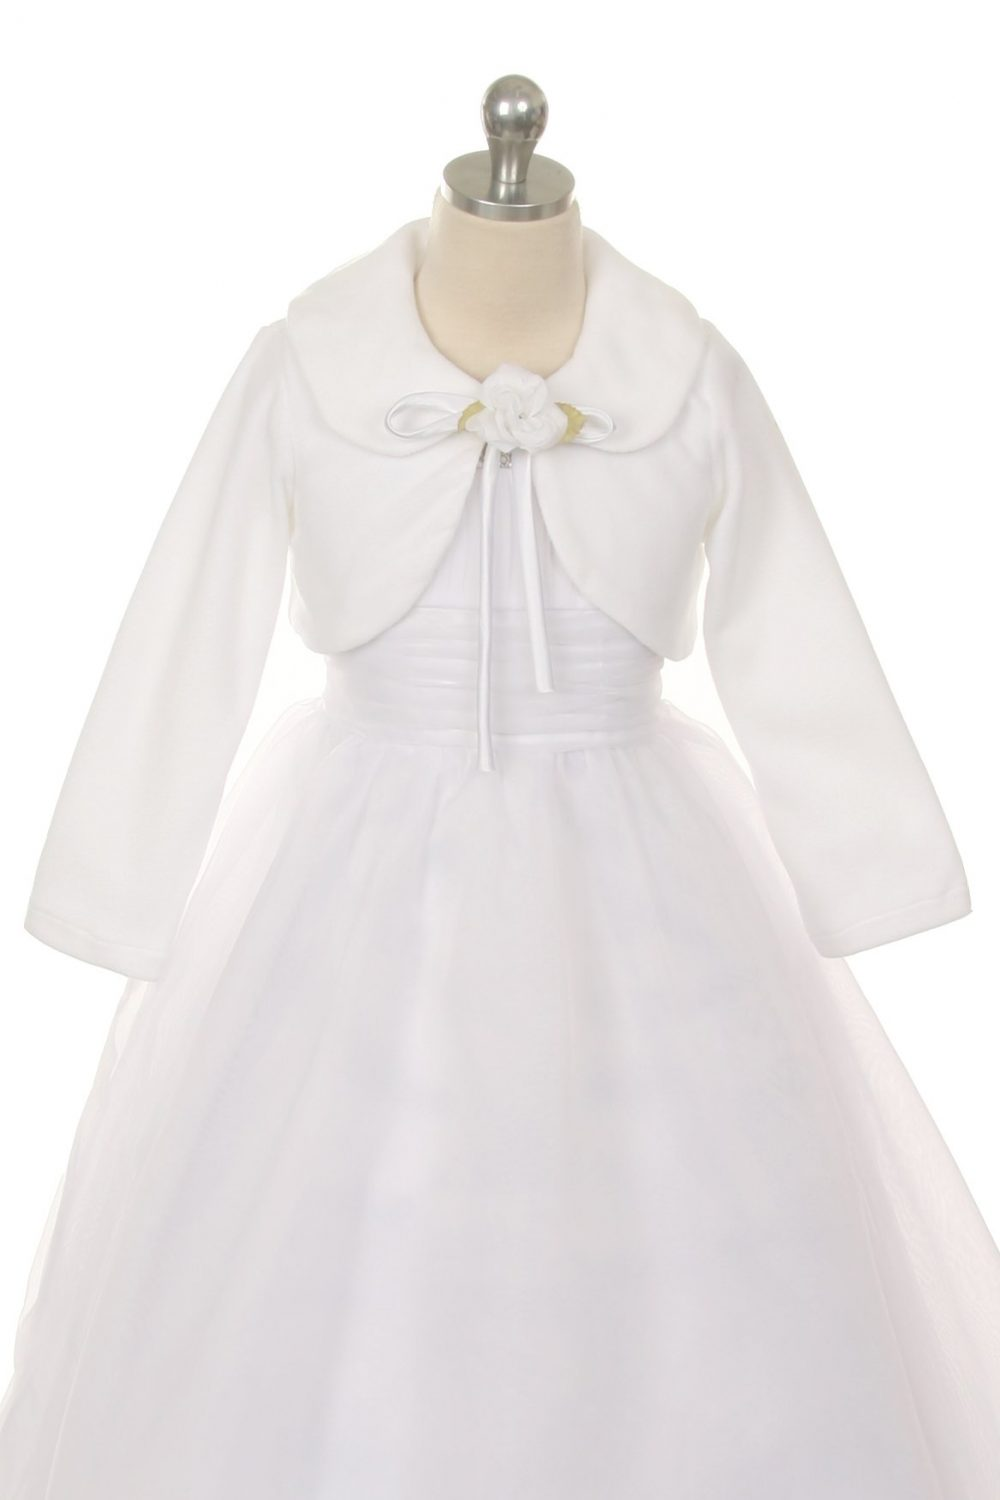 Long Sleeve First Communion Bolero Jacket with Flower